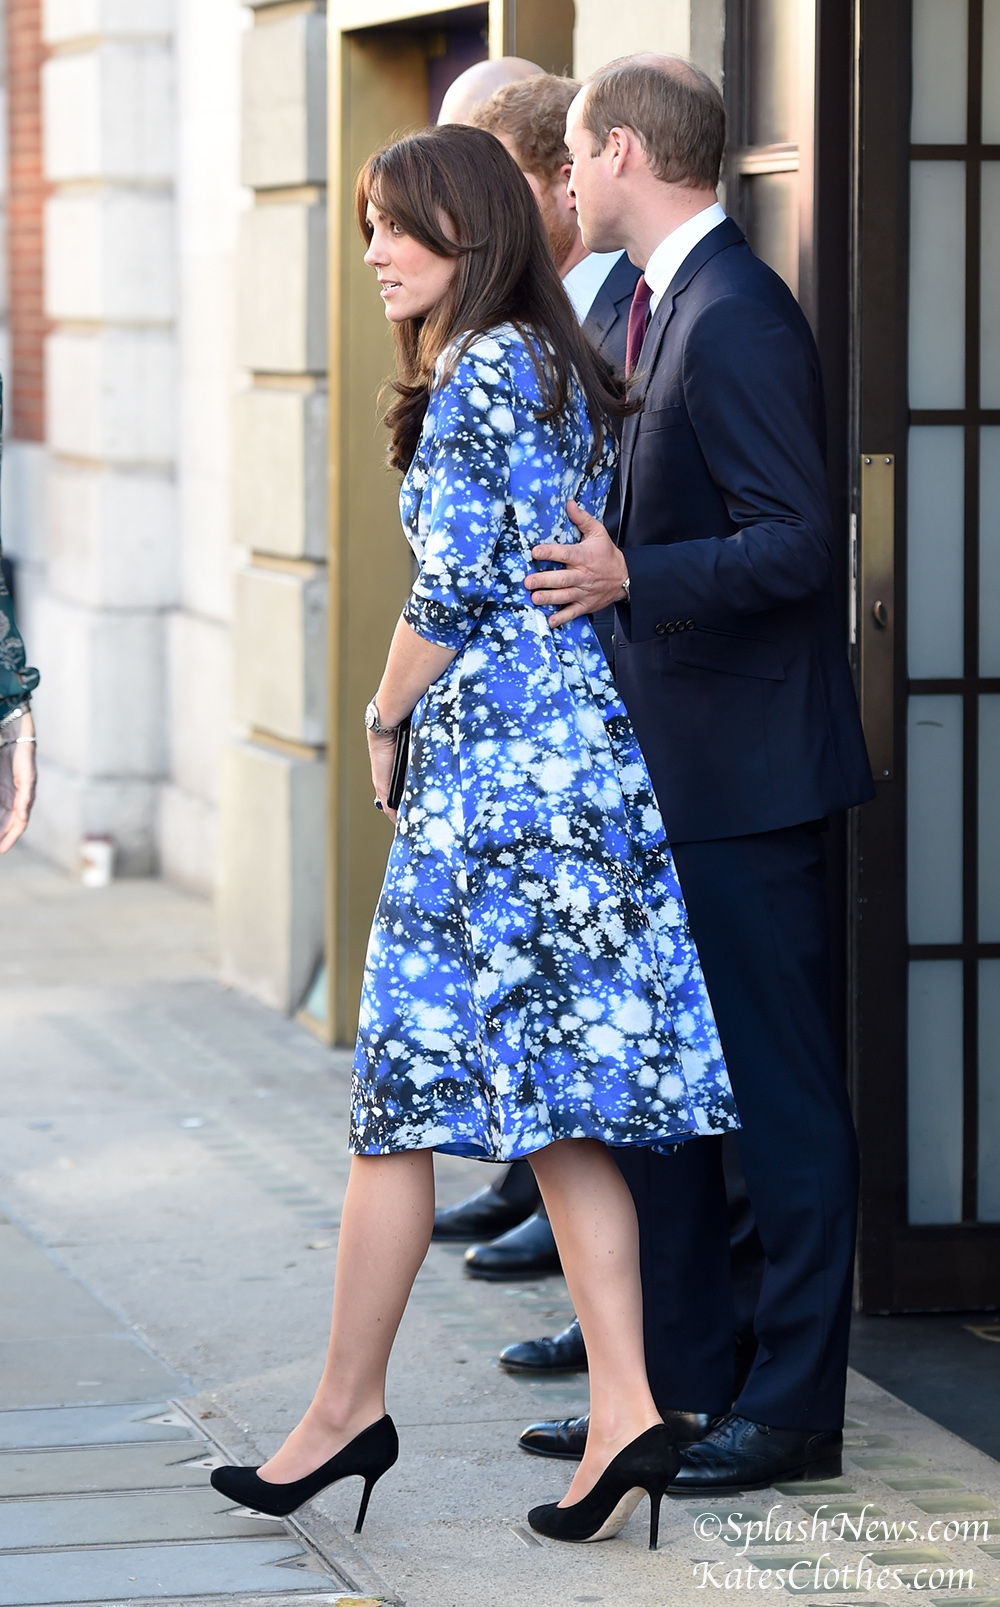 Catherine Duchess Of Cambridge, Prince William And Prince Harry visit BAFTA in piccadilly,london